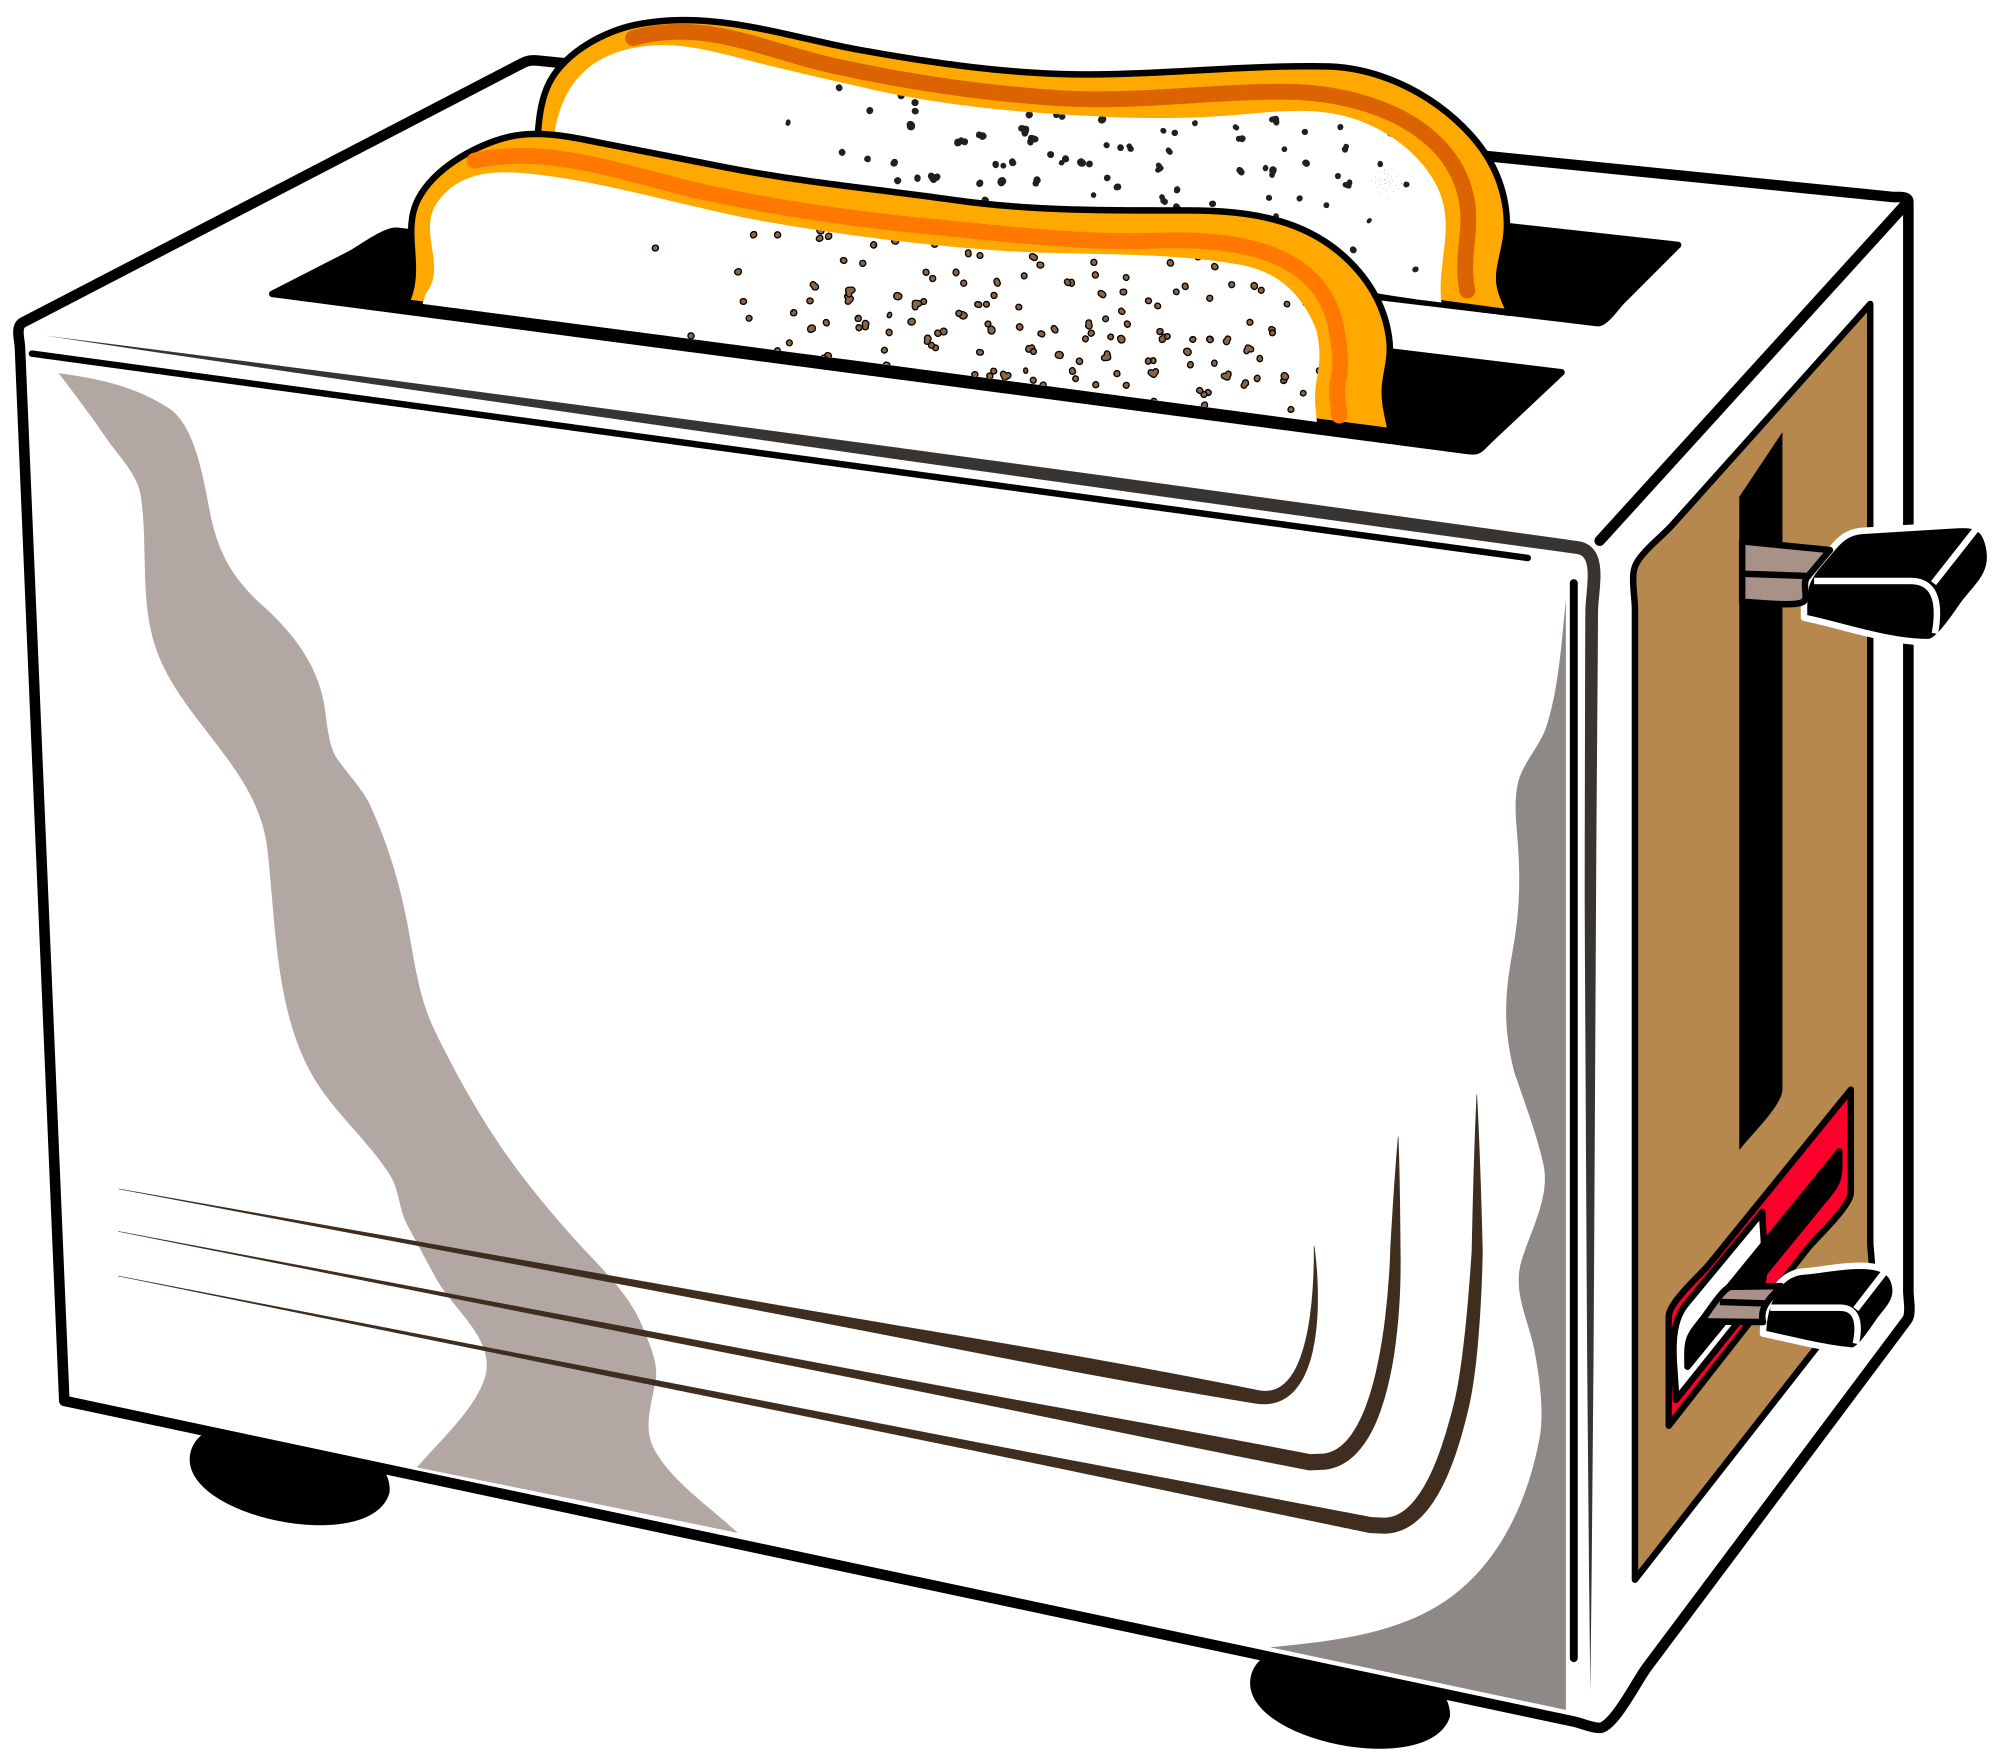 jpg black and white File svg wikimedia commons. Clipart toaster.